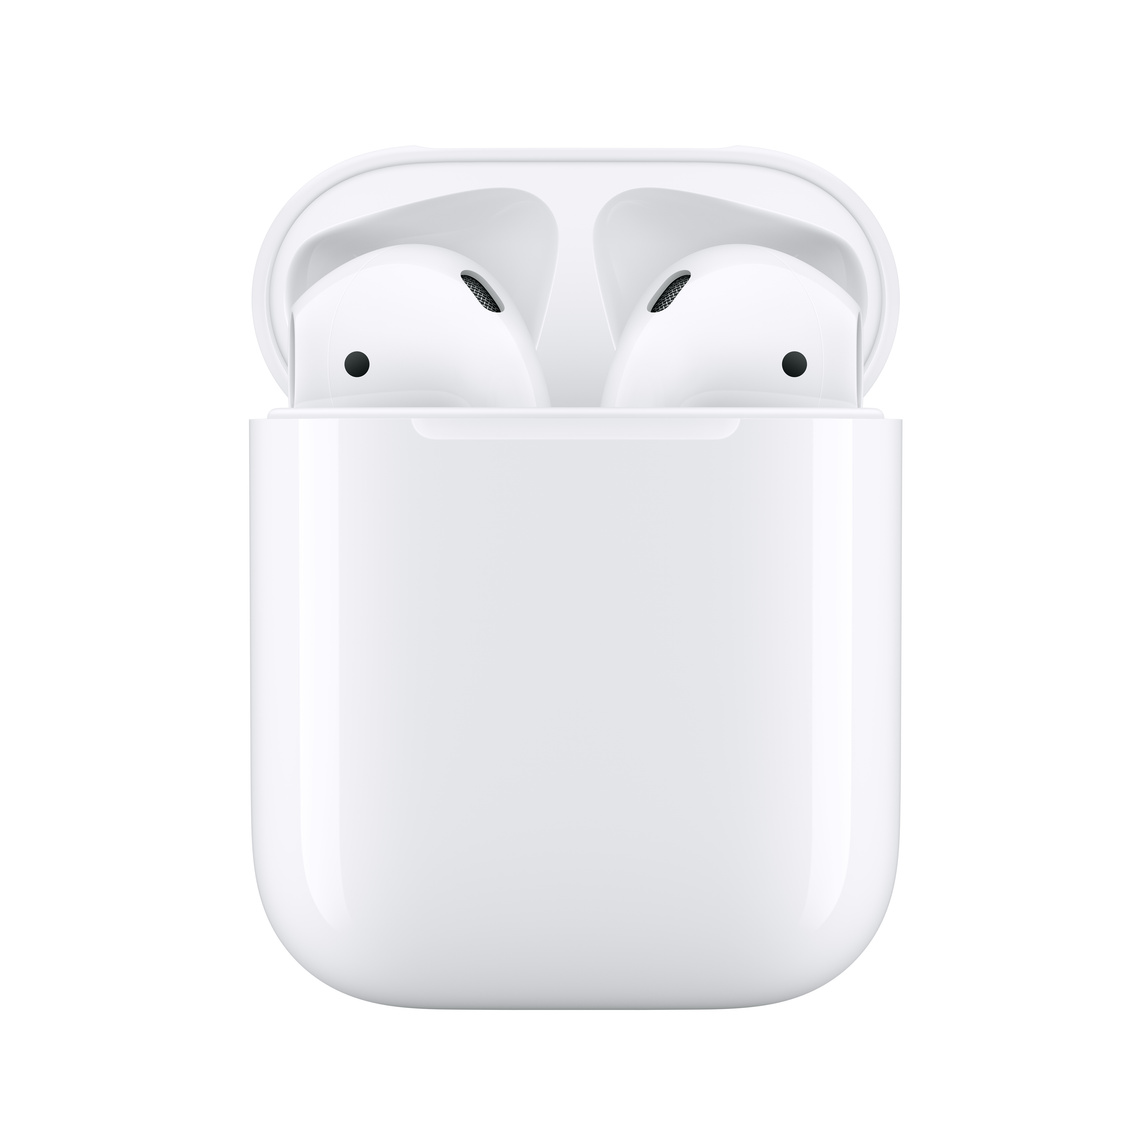 Compre os AirPods Pro Apple (PT)